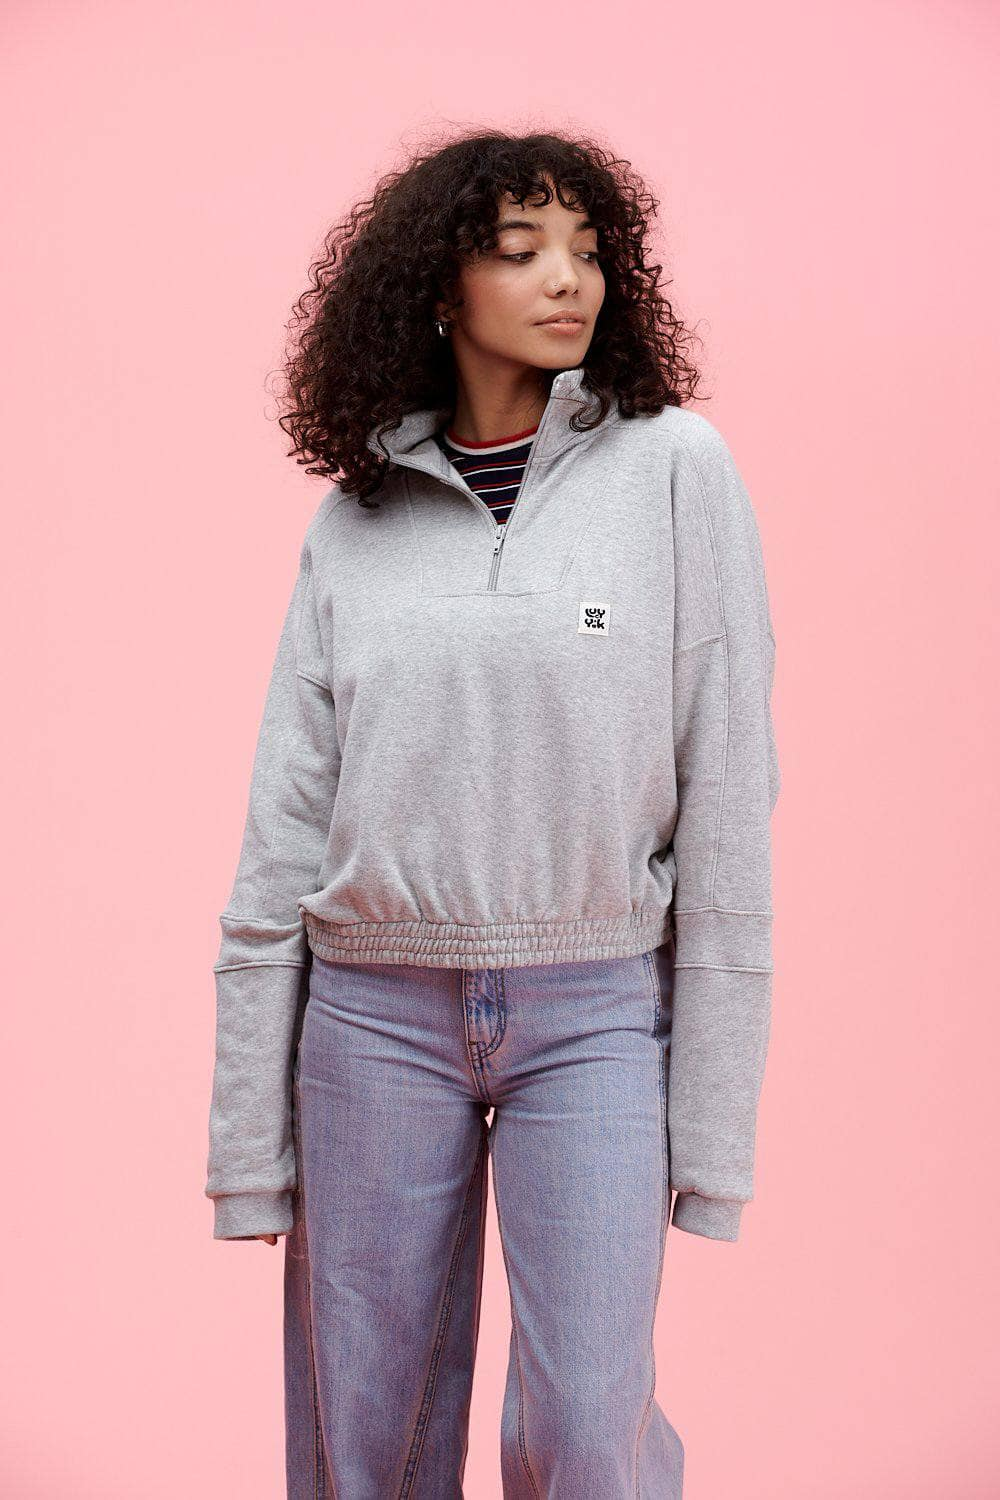 Lucy & Yak Tops 'Marley' Cropped Half Zip Sweater in Grey Marl